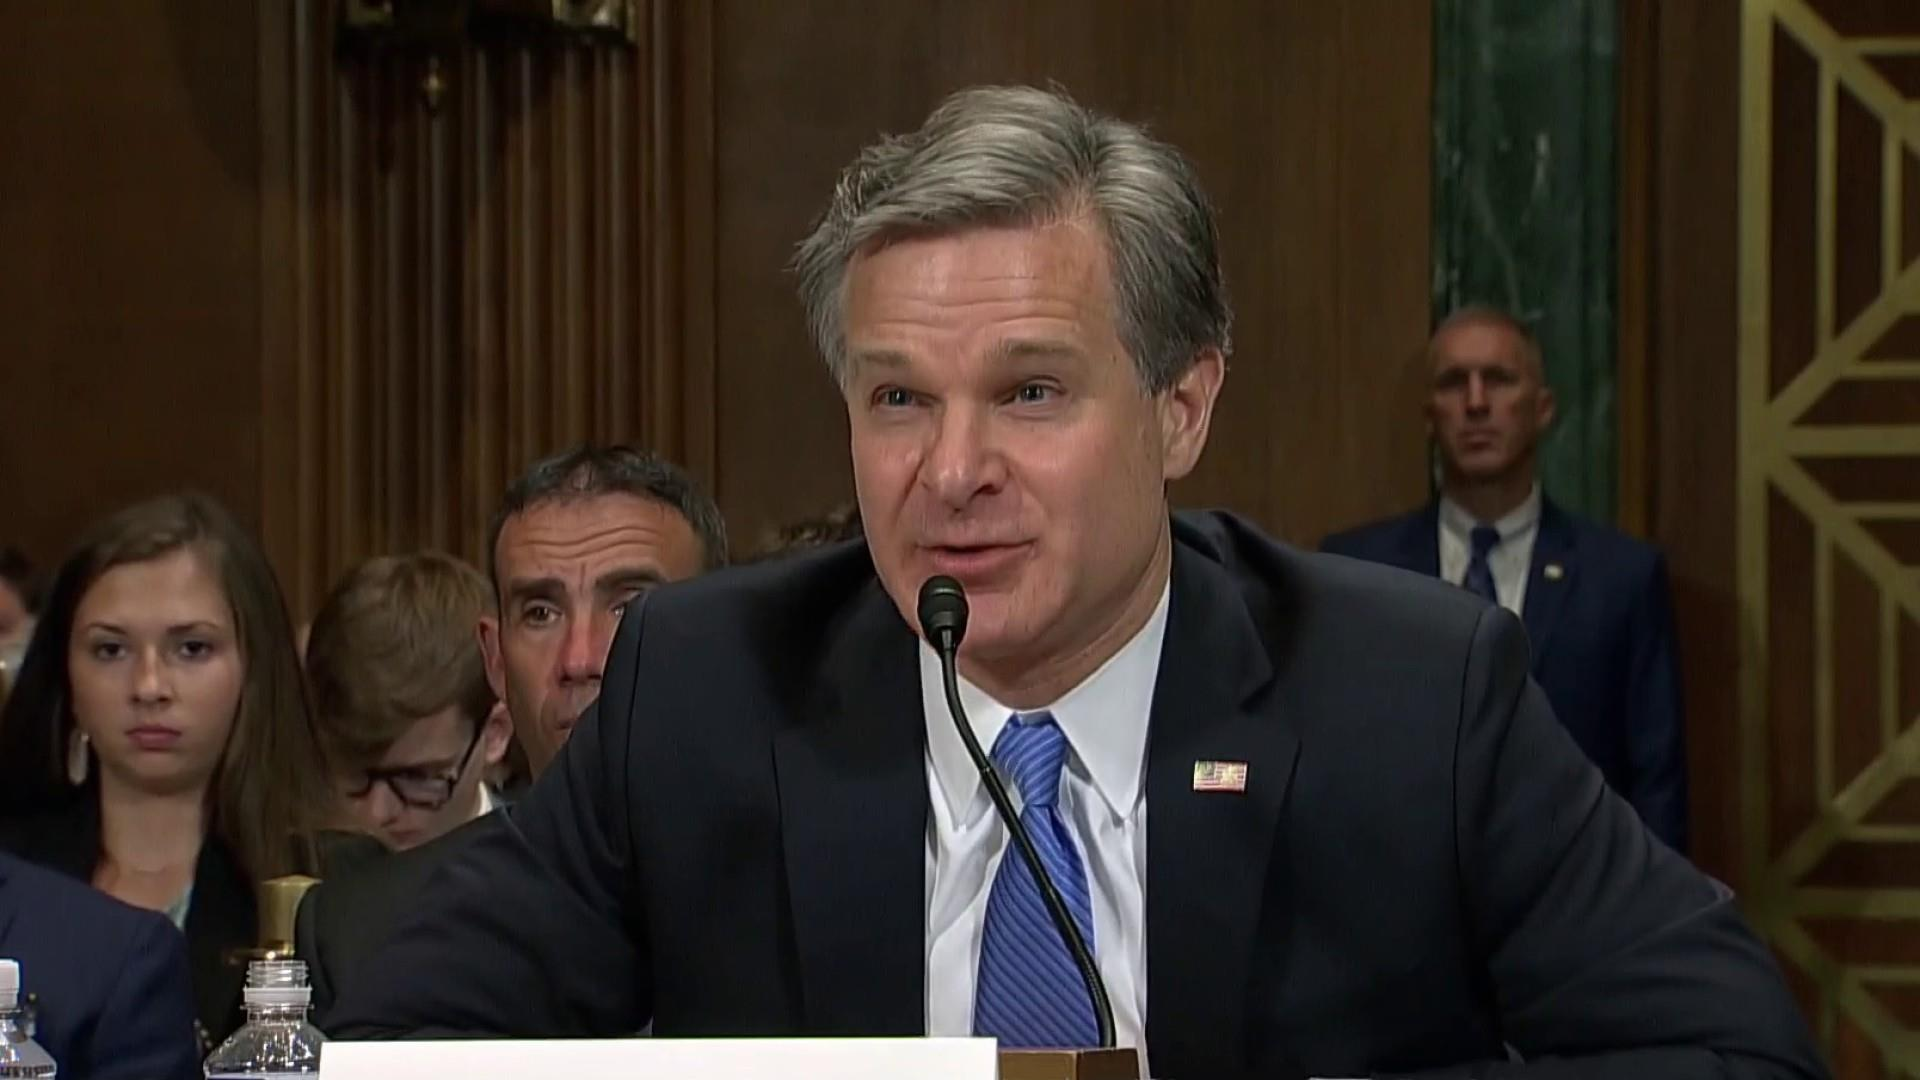 FBI Director Wray not particularly attentive to Mueller findings